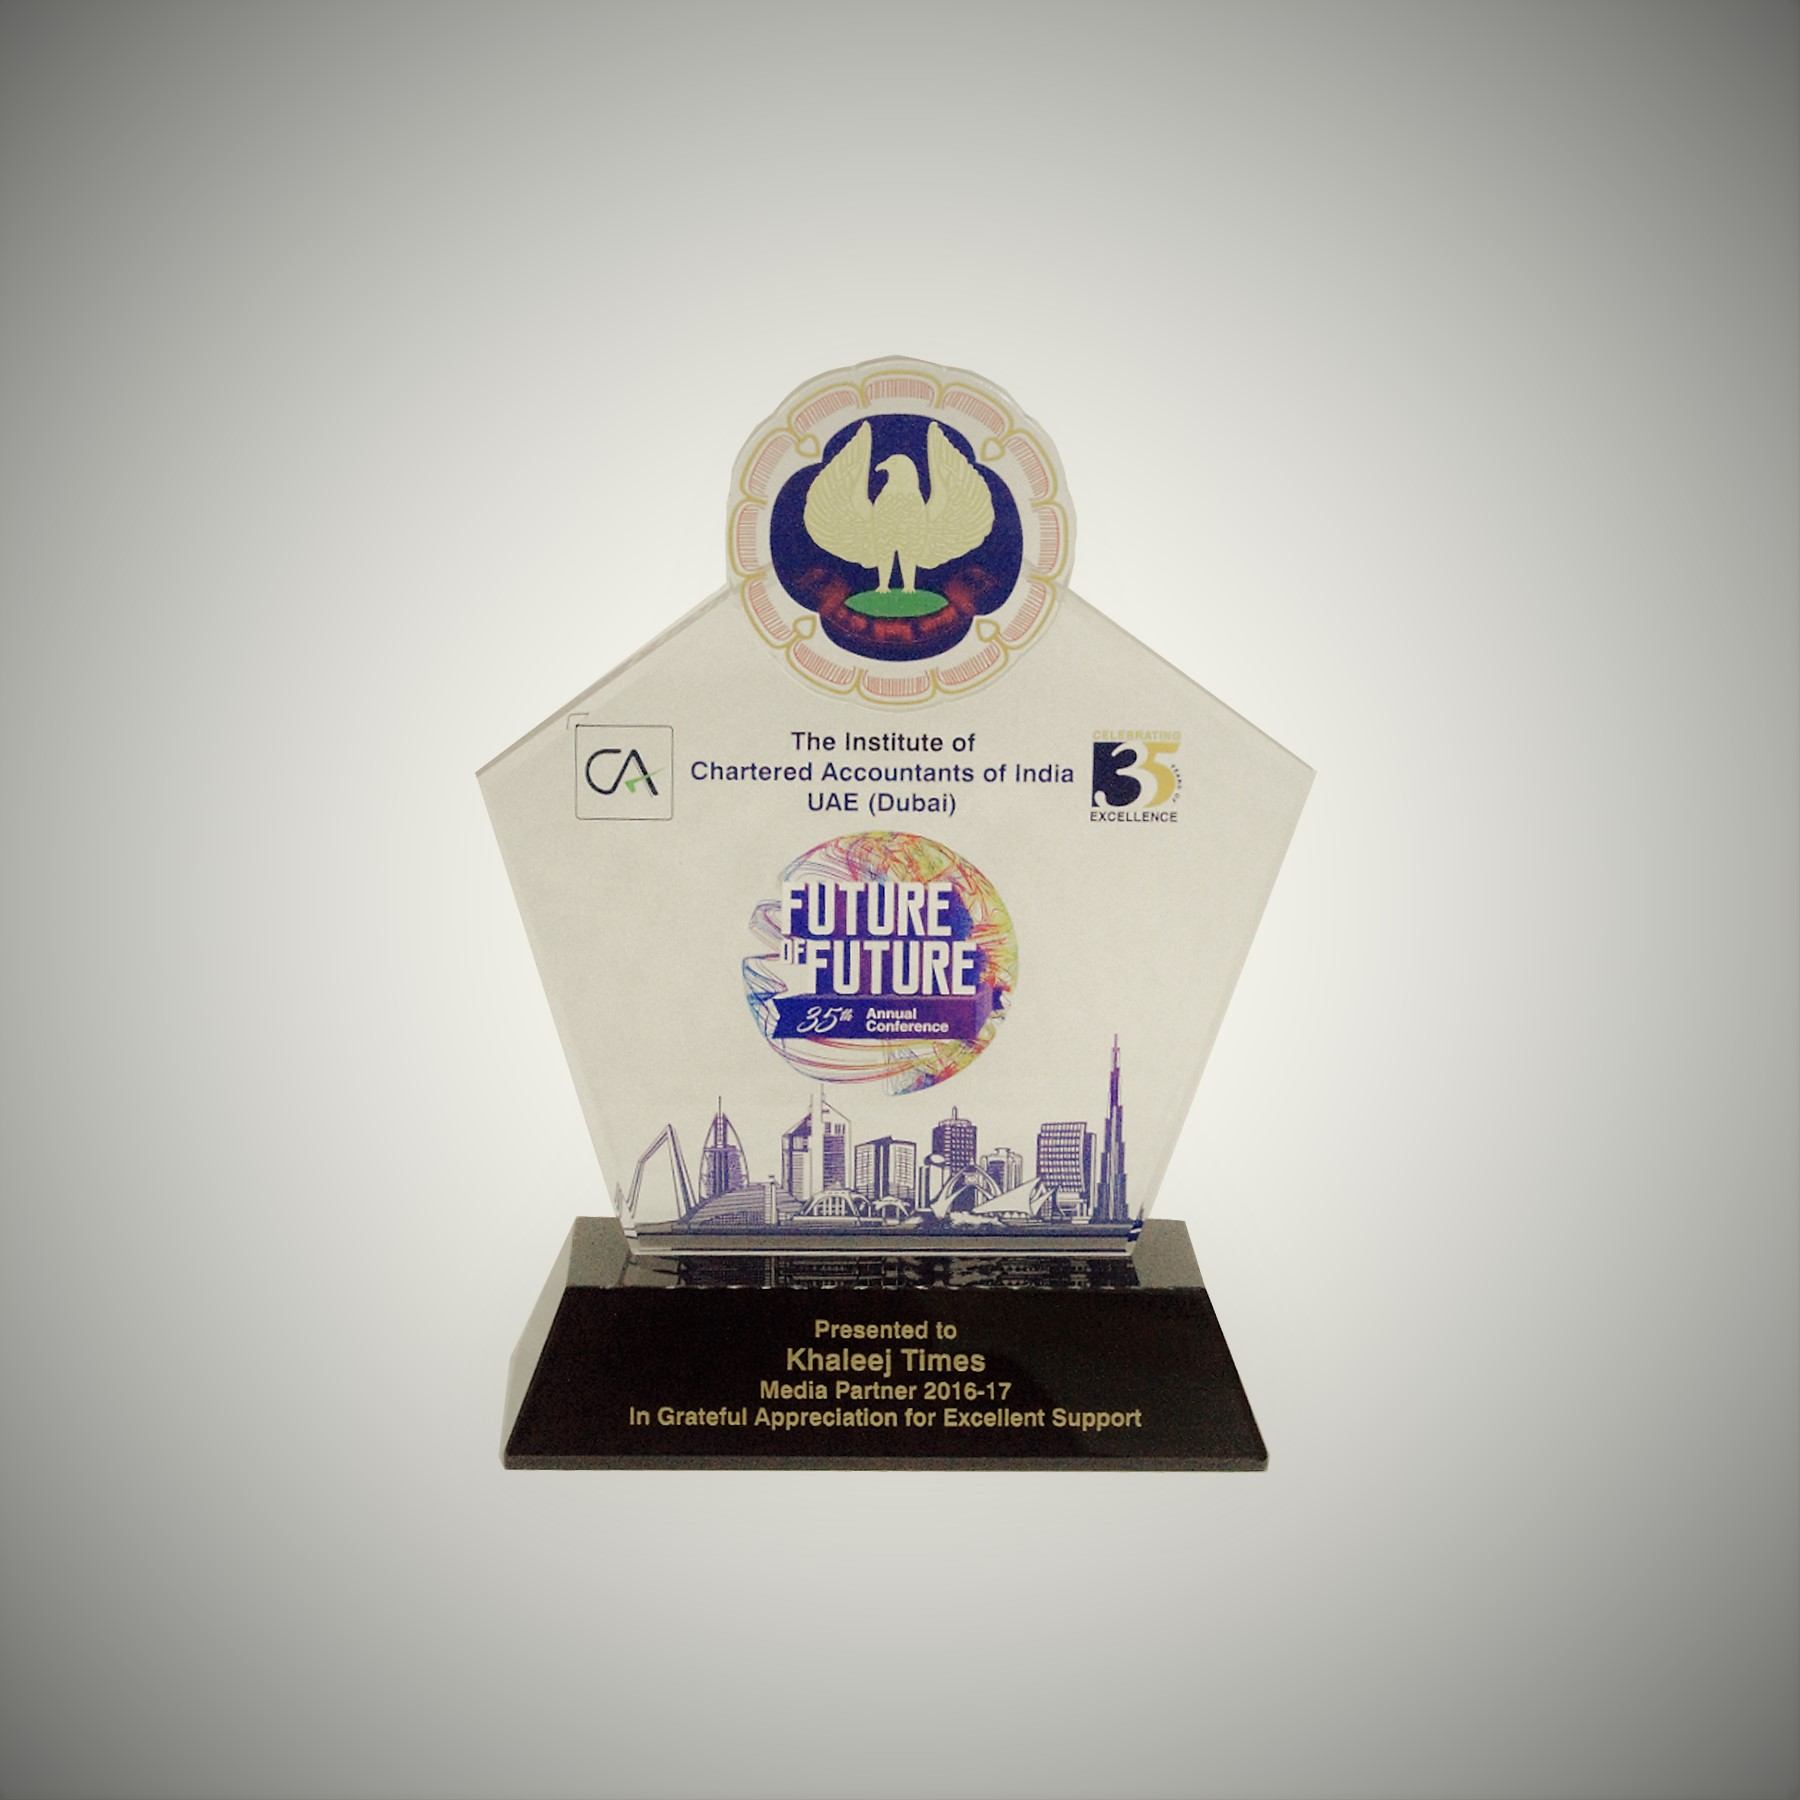 Awarded to Khaleej Times for grateful appreciation for excellent support as Media Partner 2016-17, during the 35th Annual Conference by The Institute of Chartered Accountants of India UAE (Dubai)